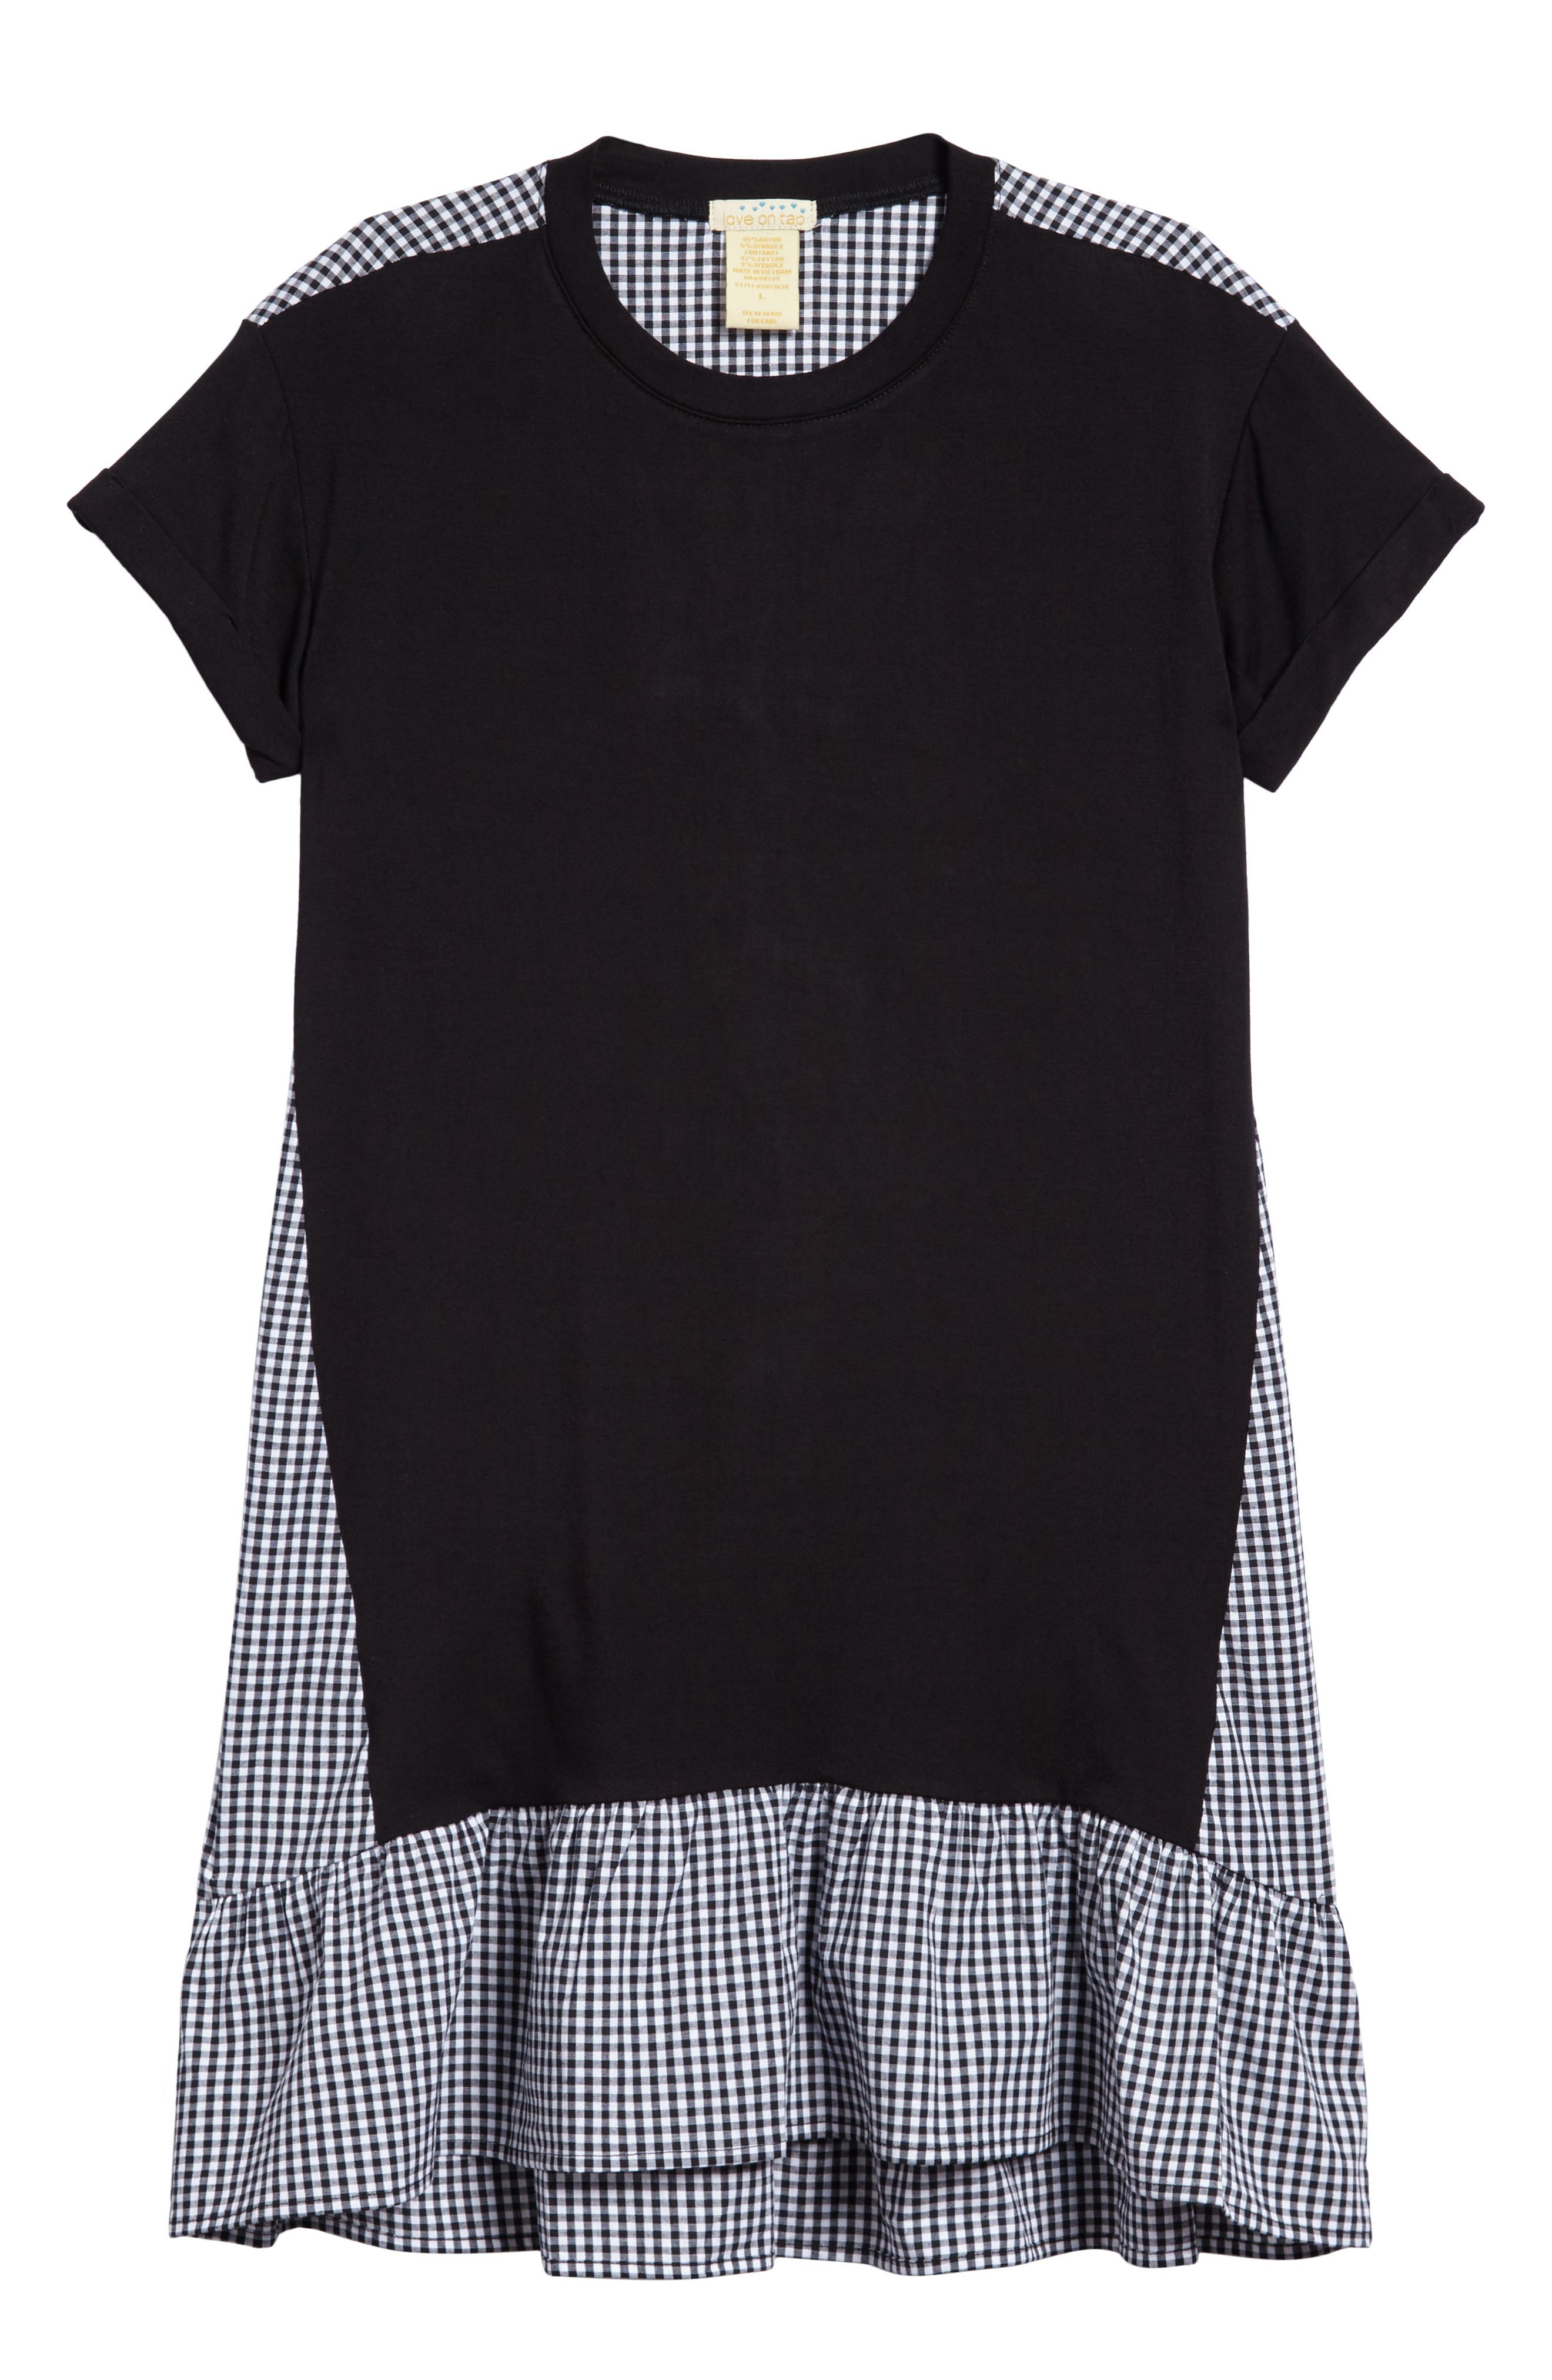 T-Shirt Dress,                         Main,                         color, Blk/ White